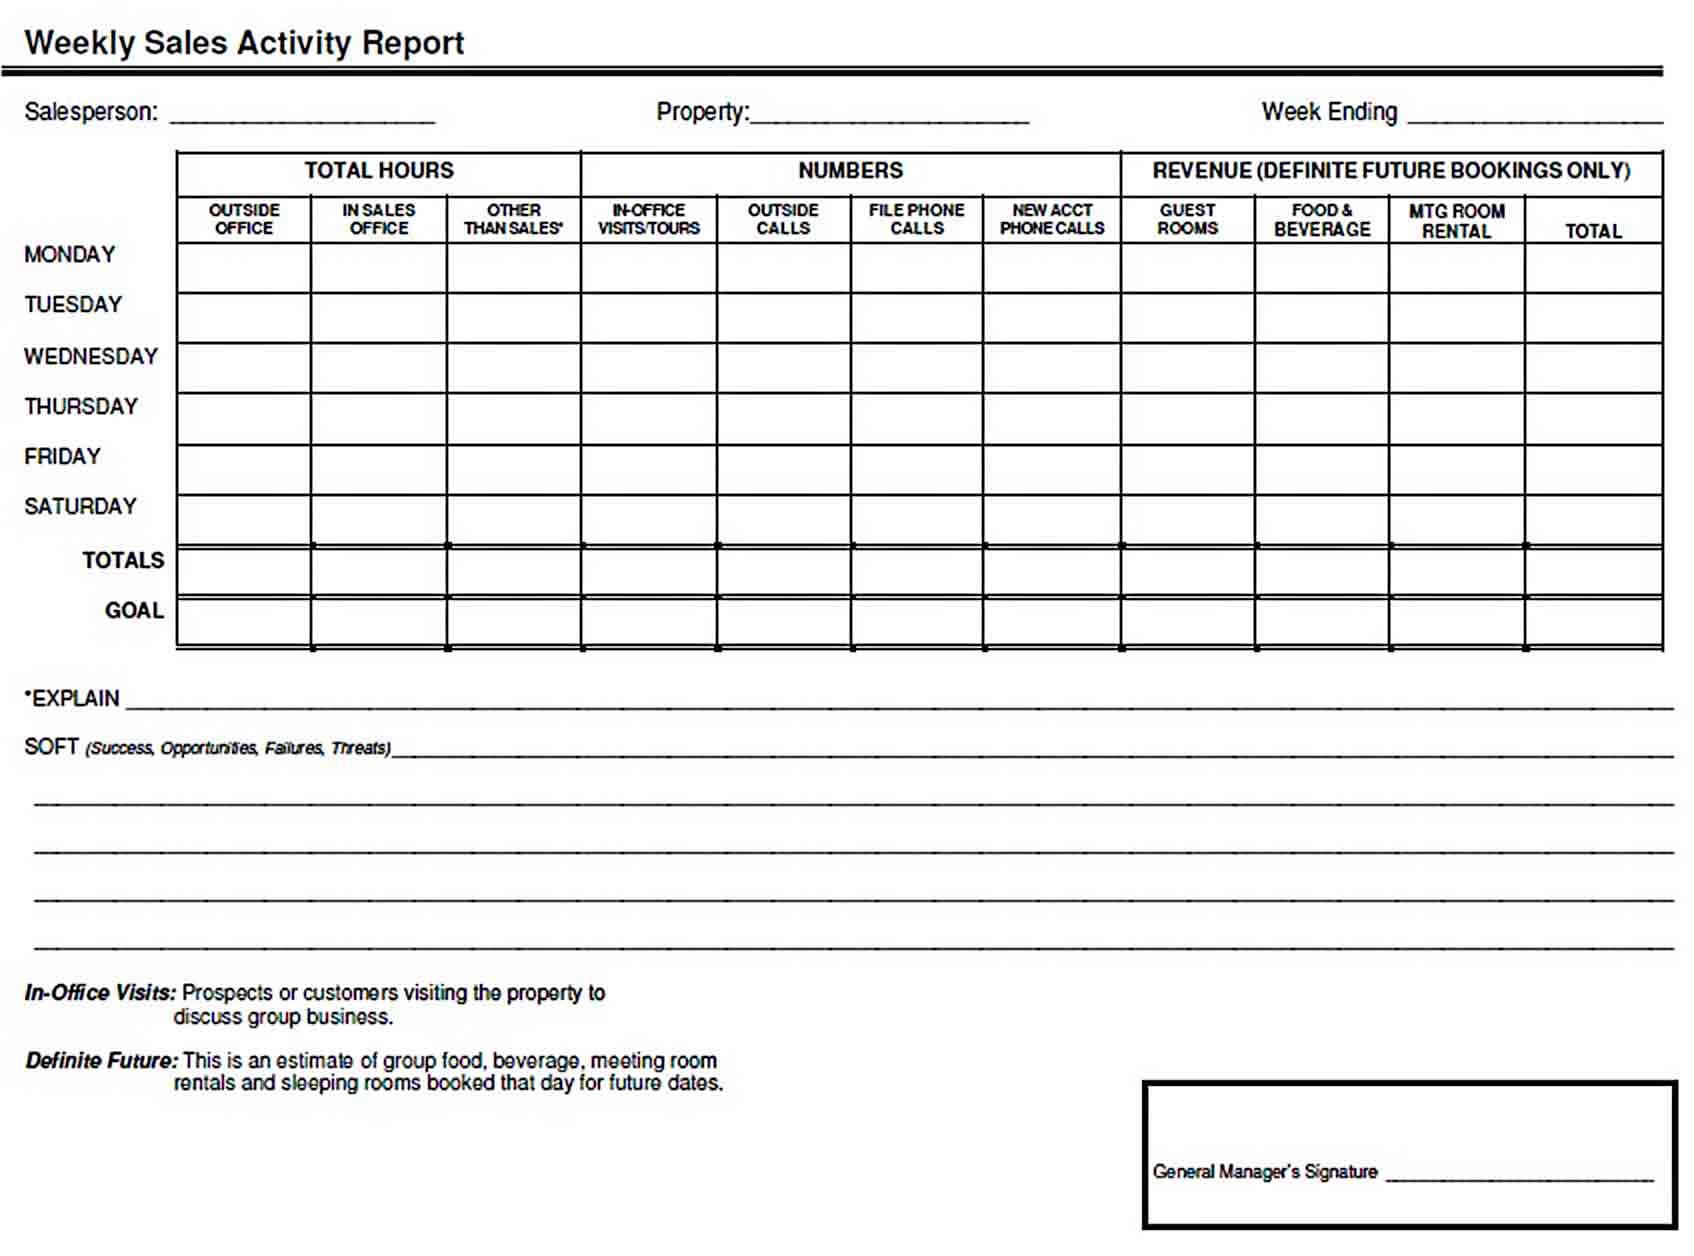 Templates Weekly Sales Activity Report Word Download